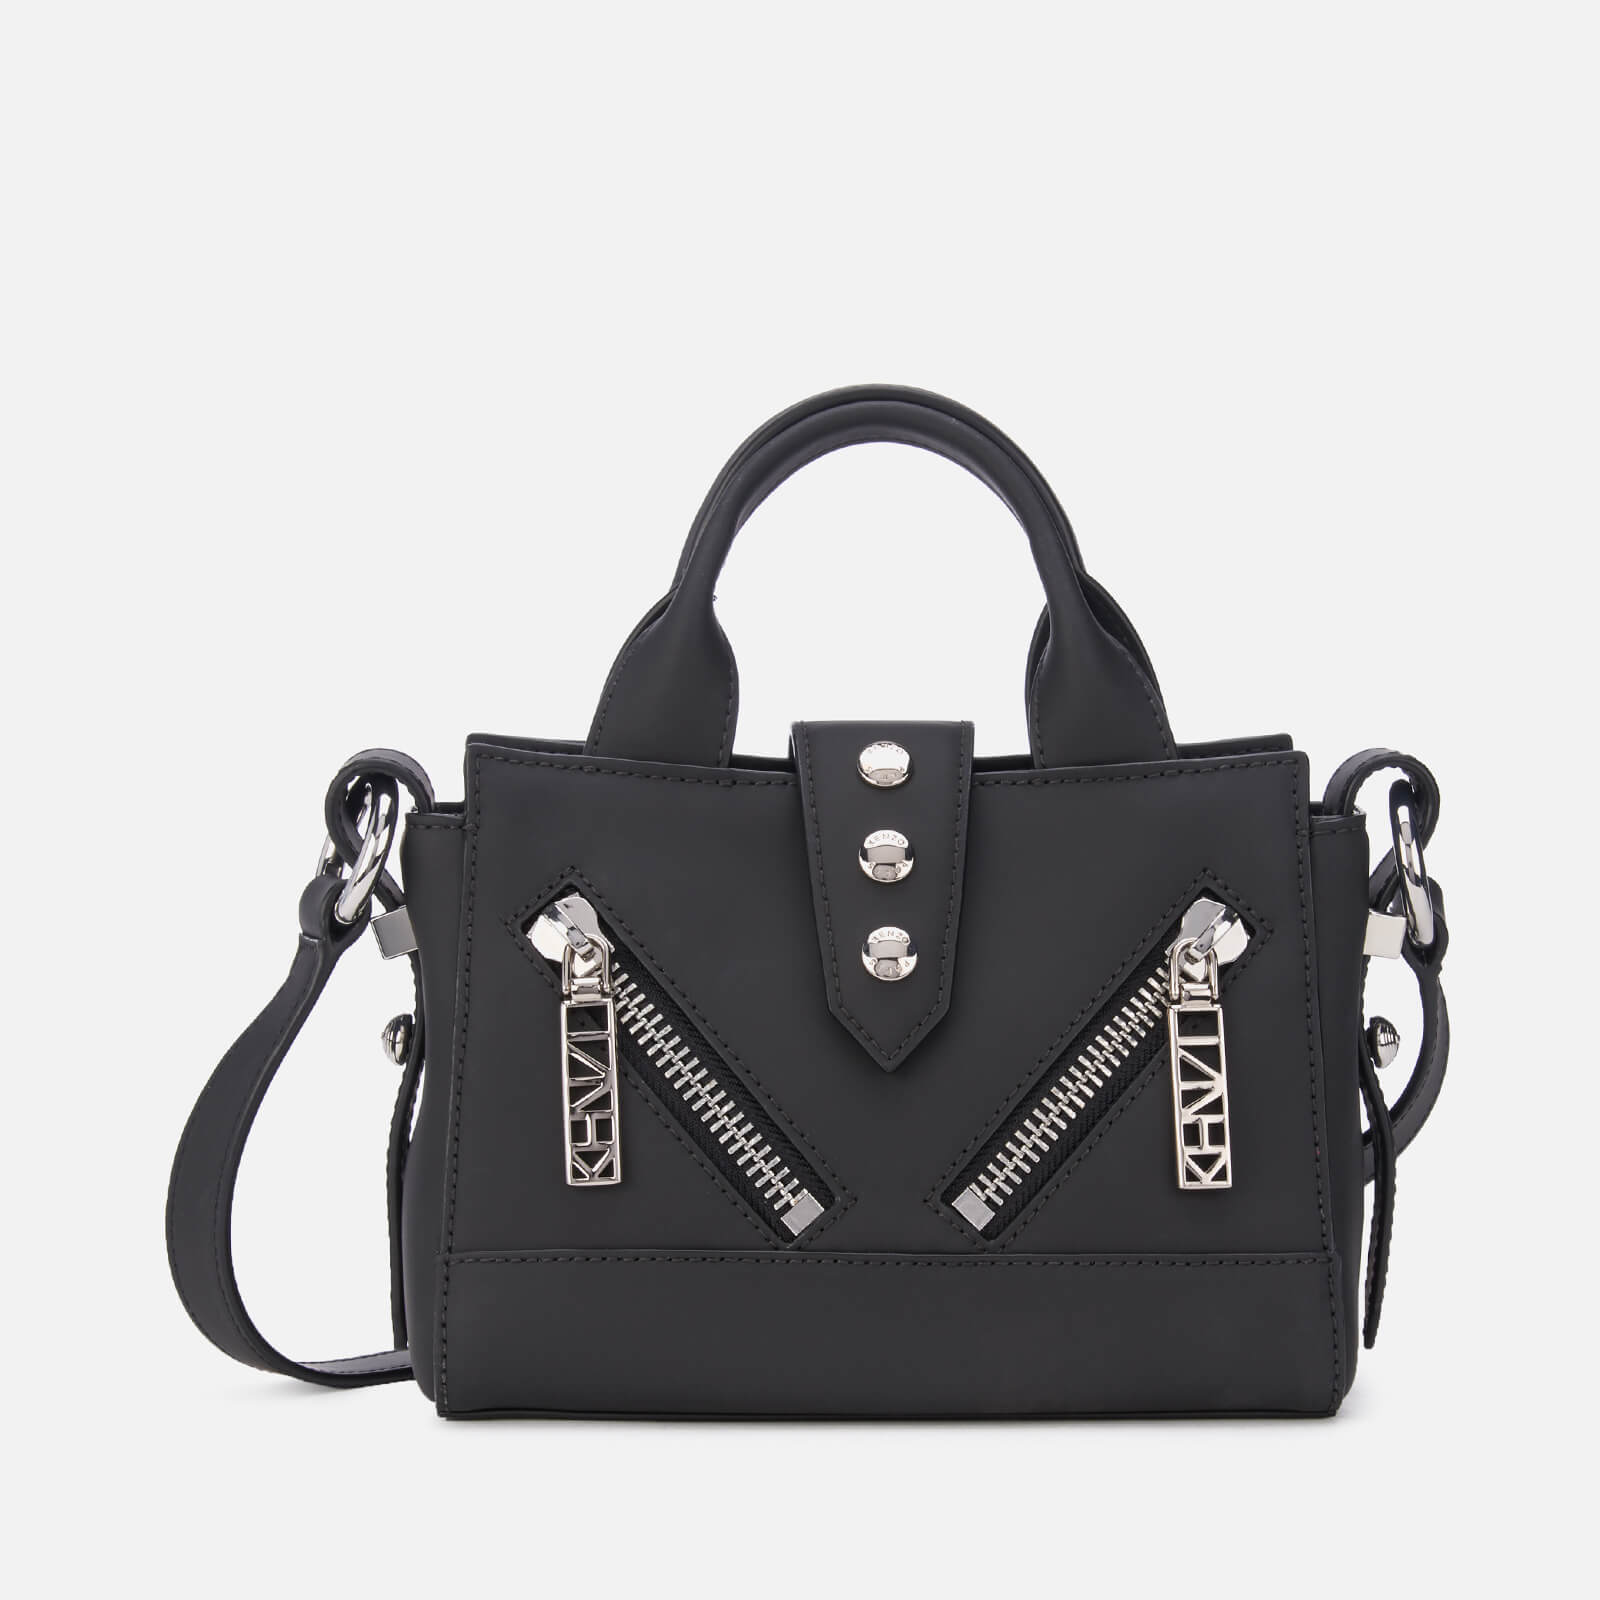 a08aa56b553 KENZO Women's Kalifornia Tiny Shoulder Bag - Black - Free UK Delivery over £ 50